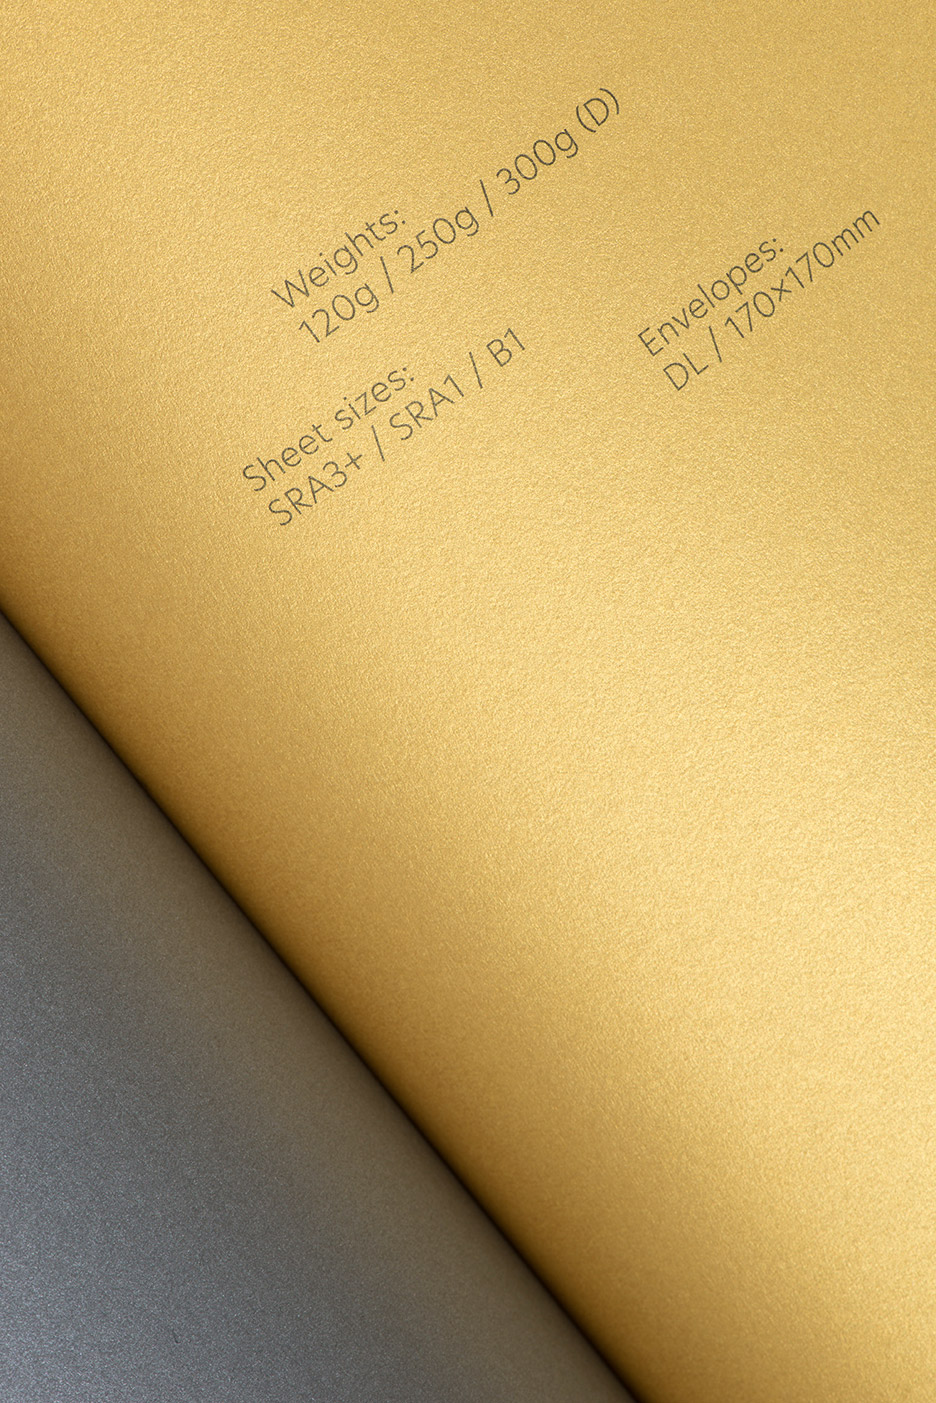 Arjowiggins Creative Papers launches website with improved search tools